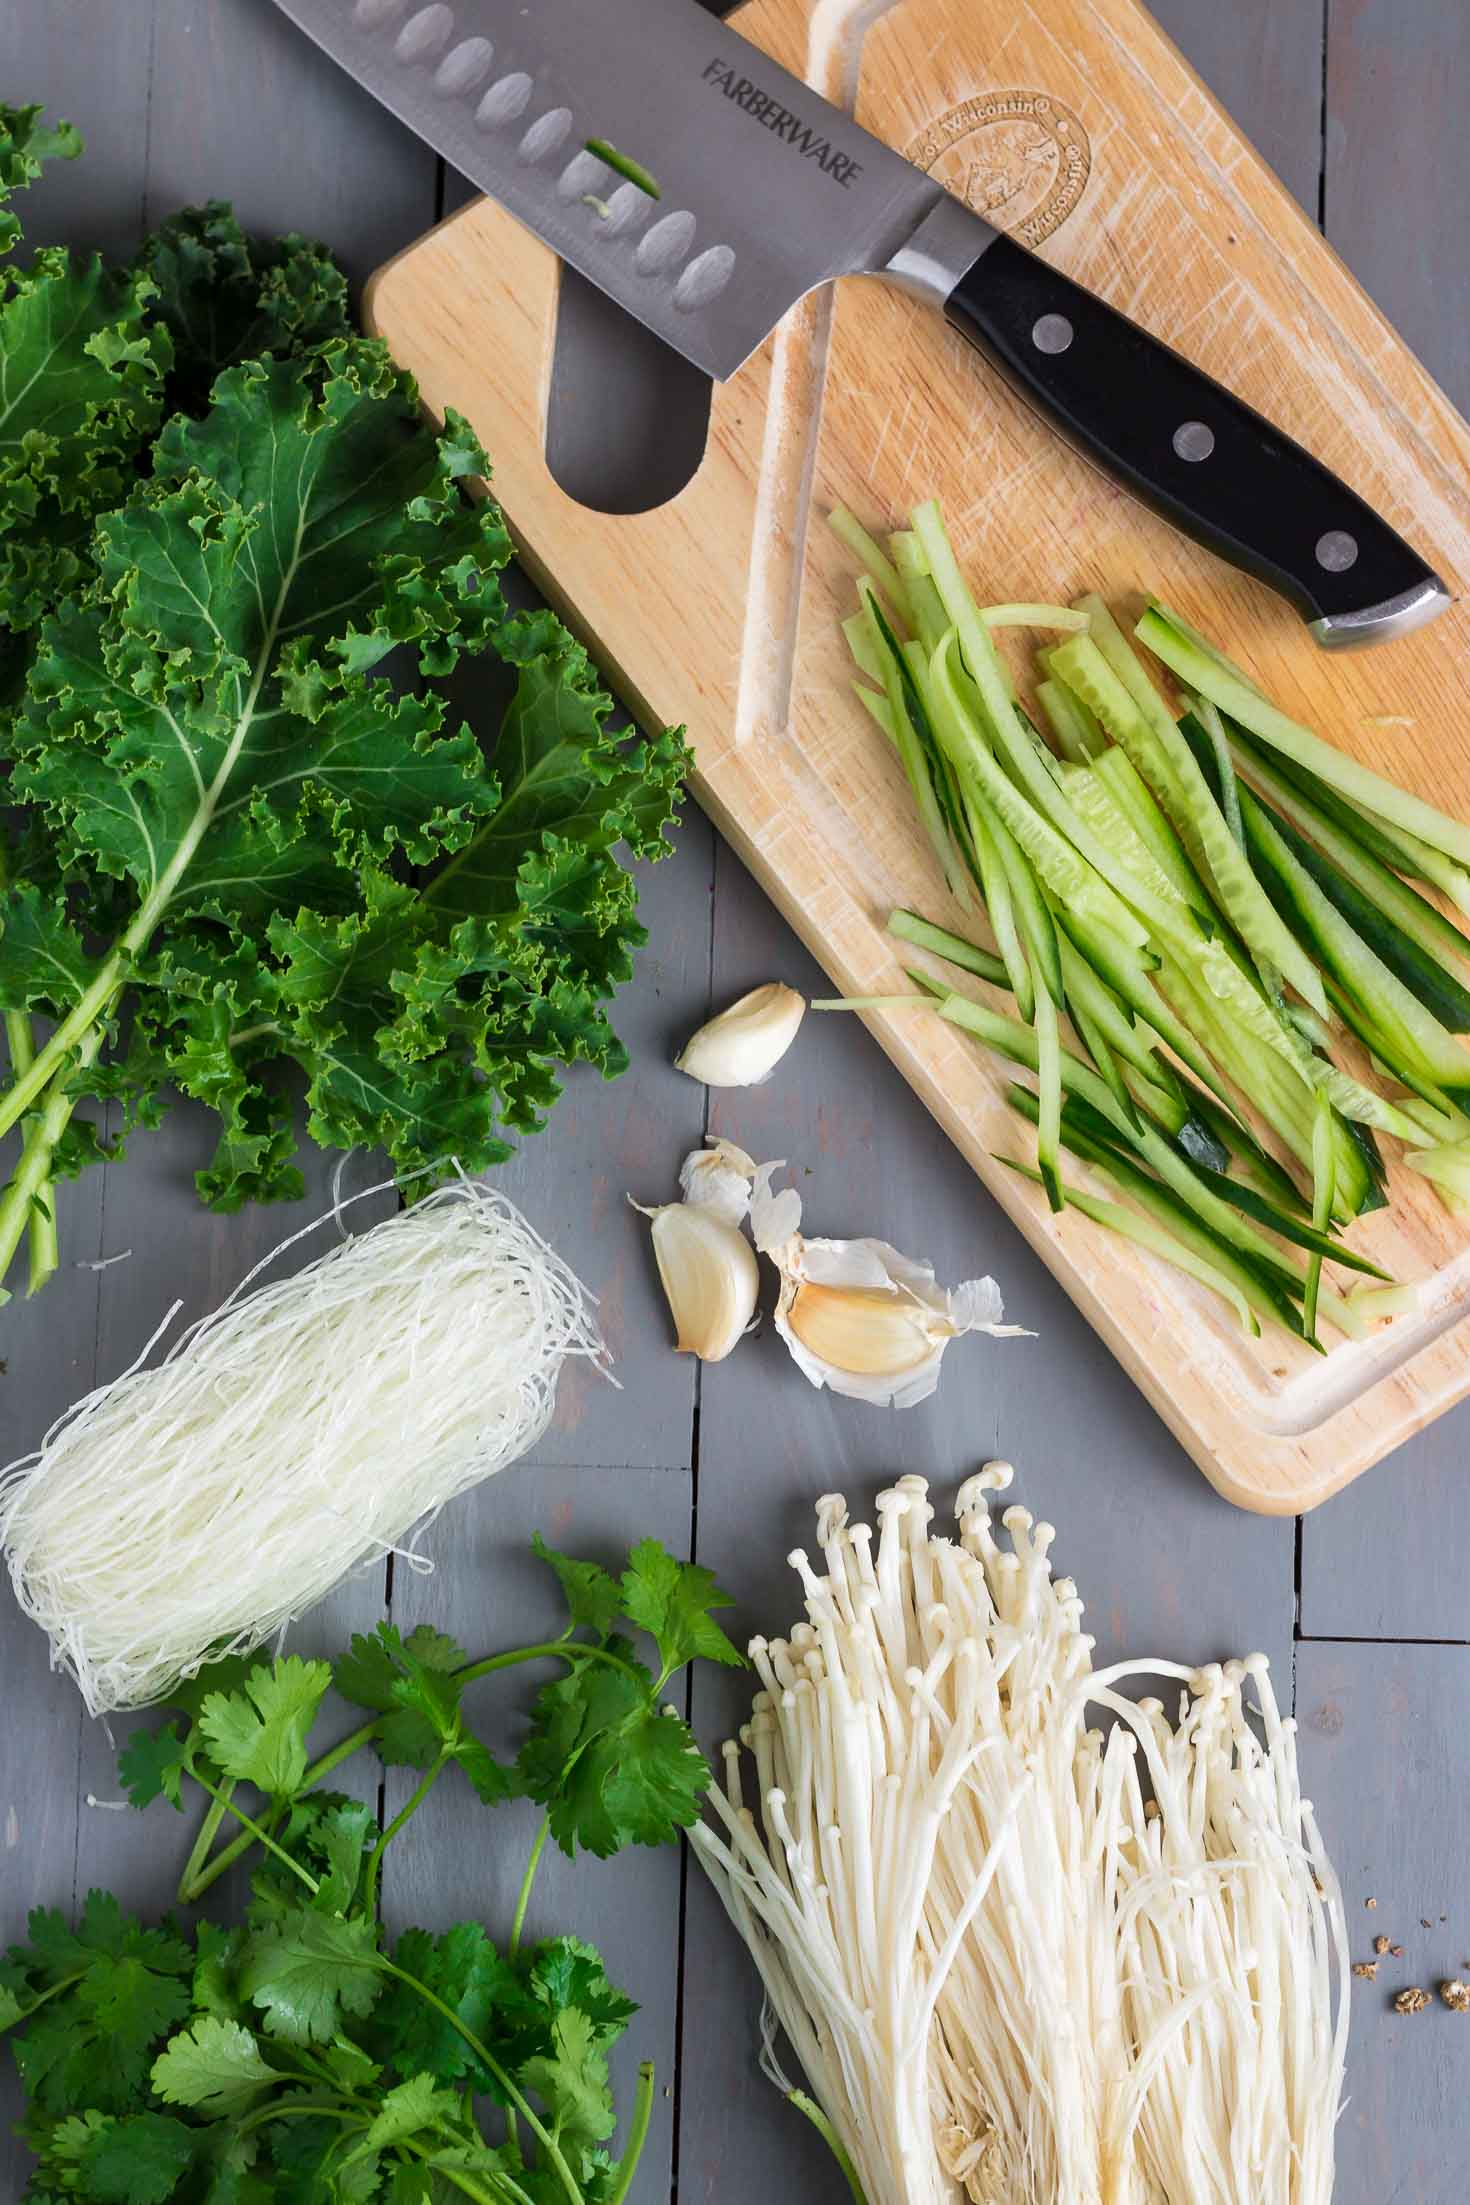 Chive Oil Glass Noodle Kale Salad-topview ingredients-cilantro, enoki mushrooms, cucumber, kale, dehydrated glass noodles